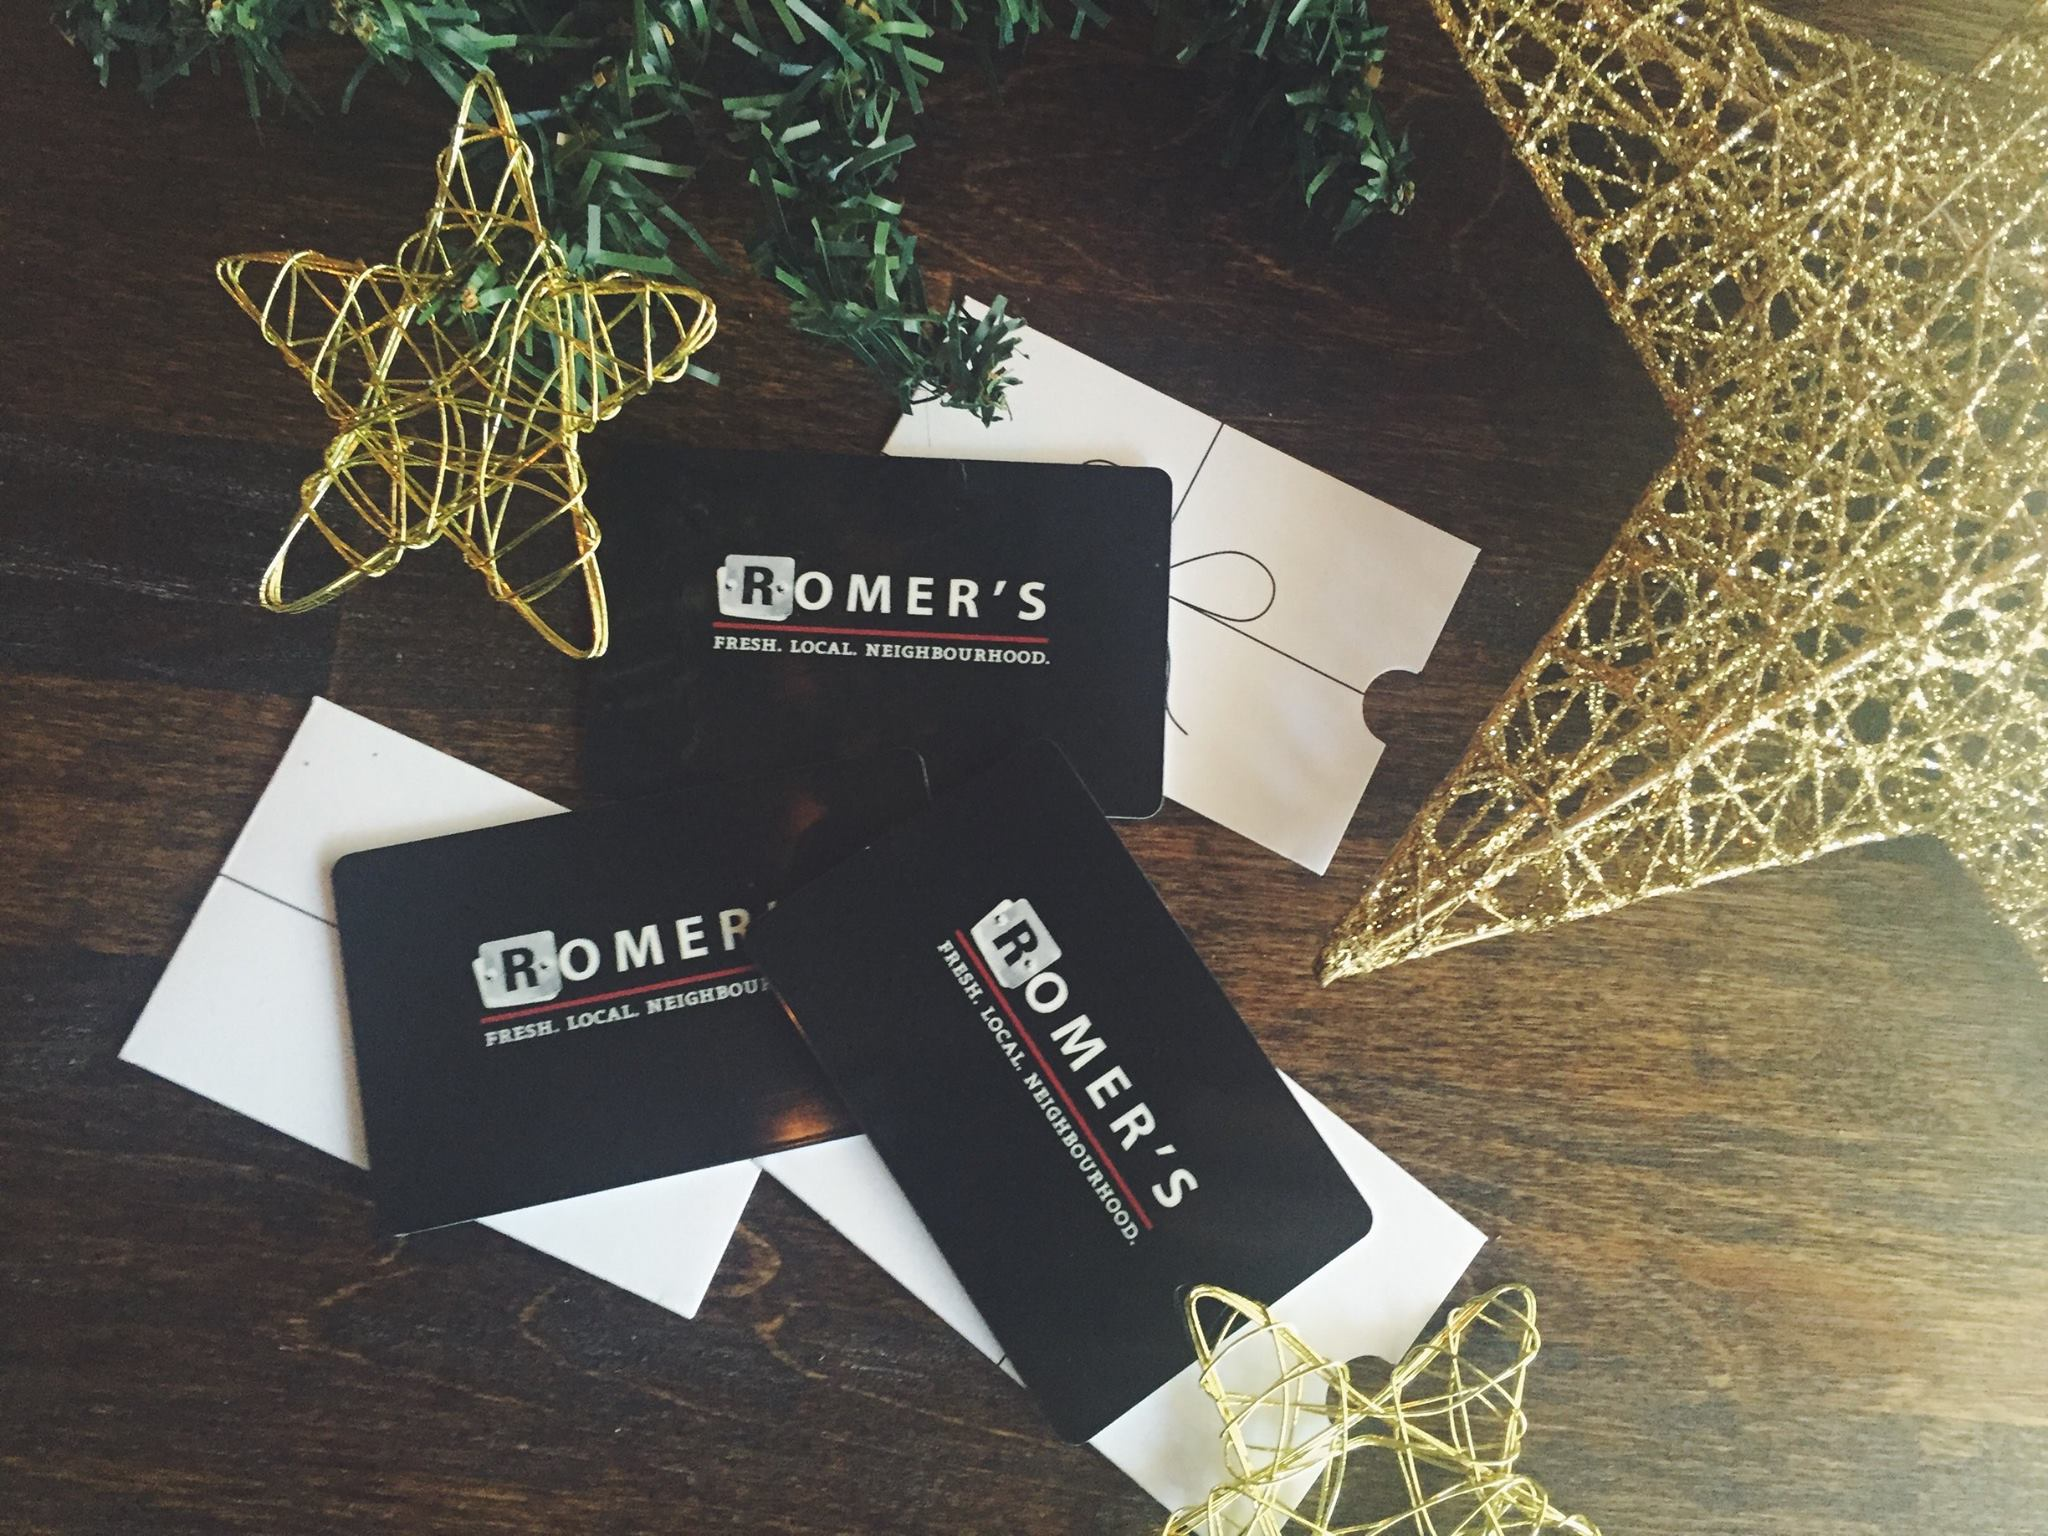 Romers-gift-cards